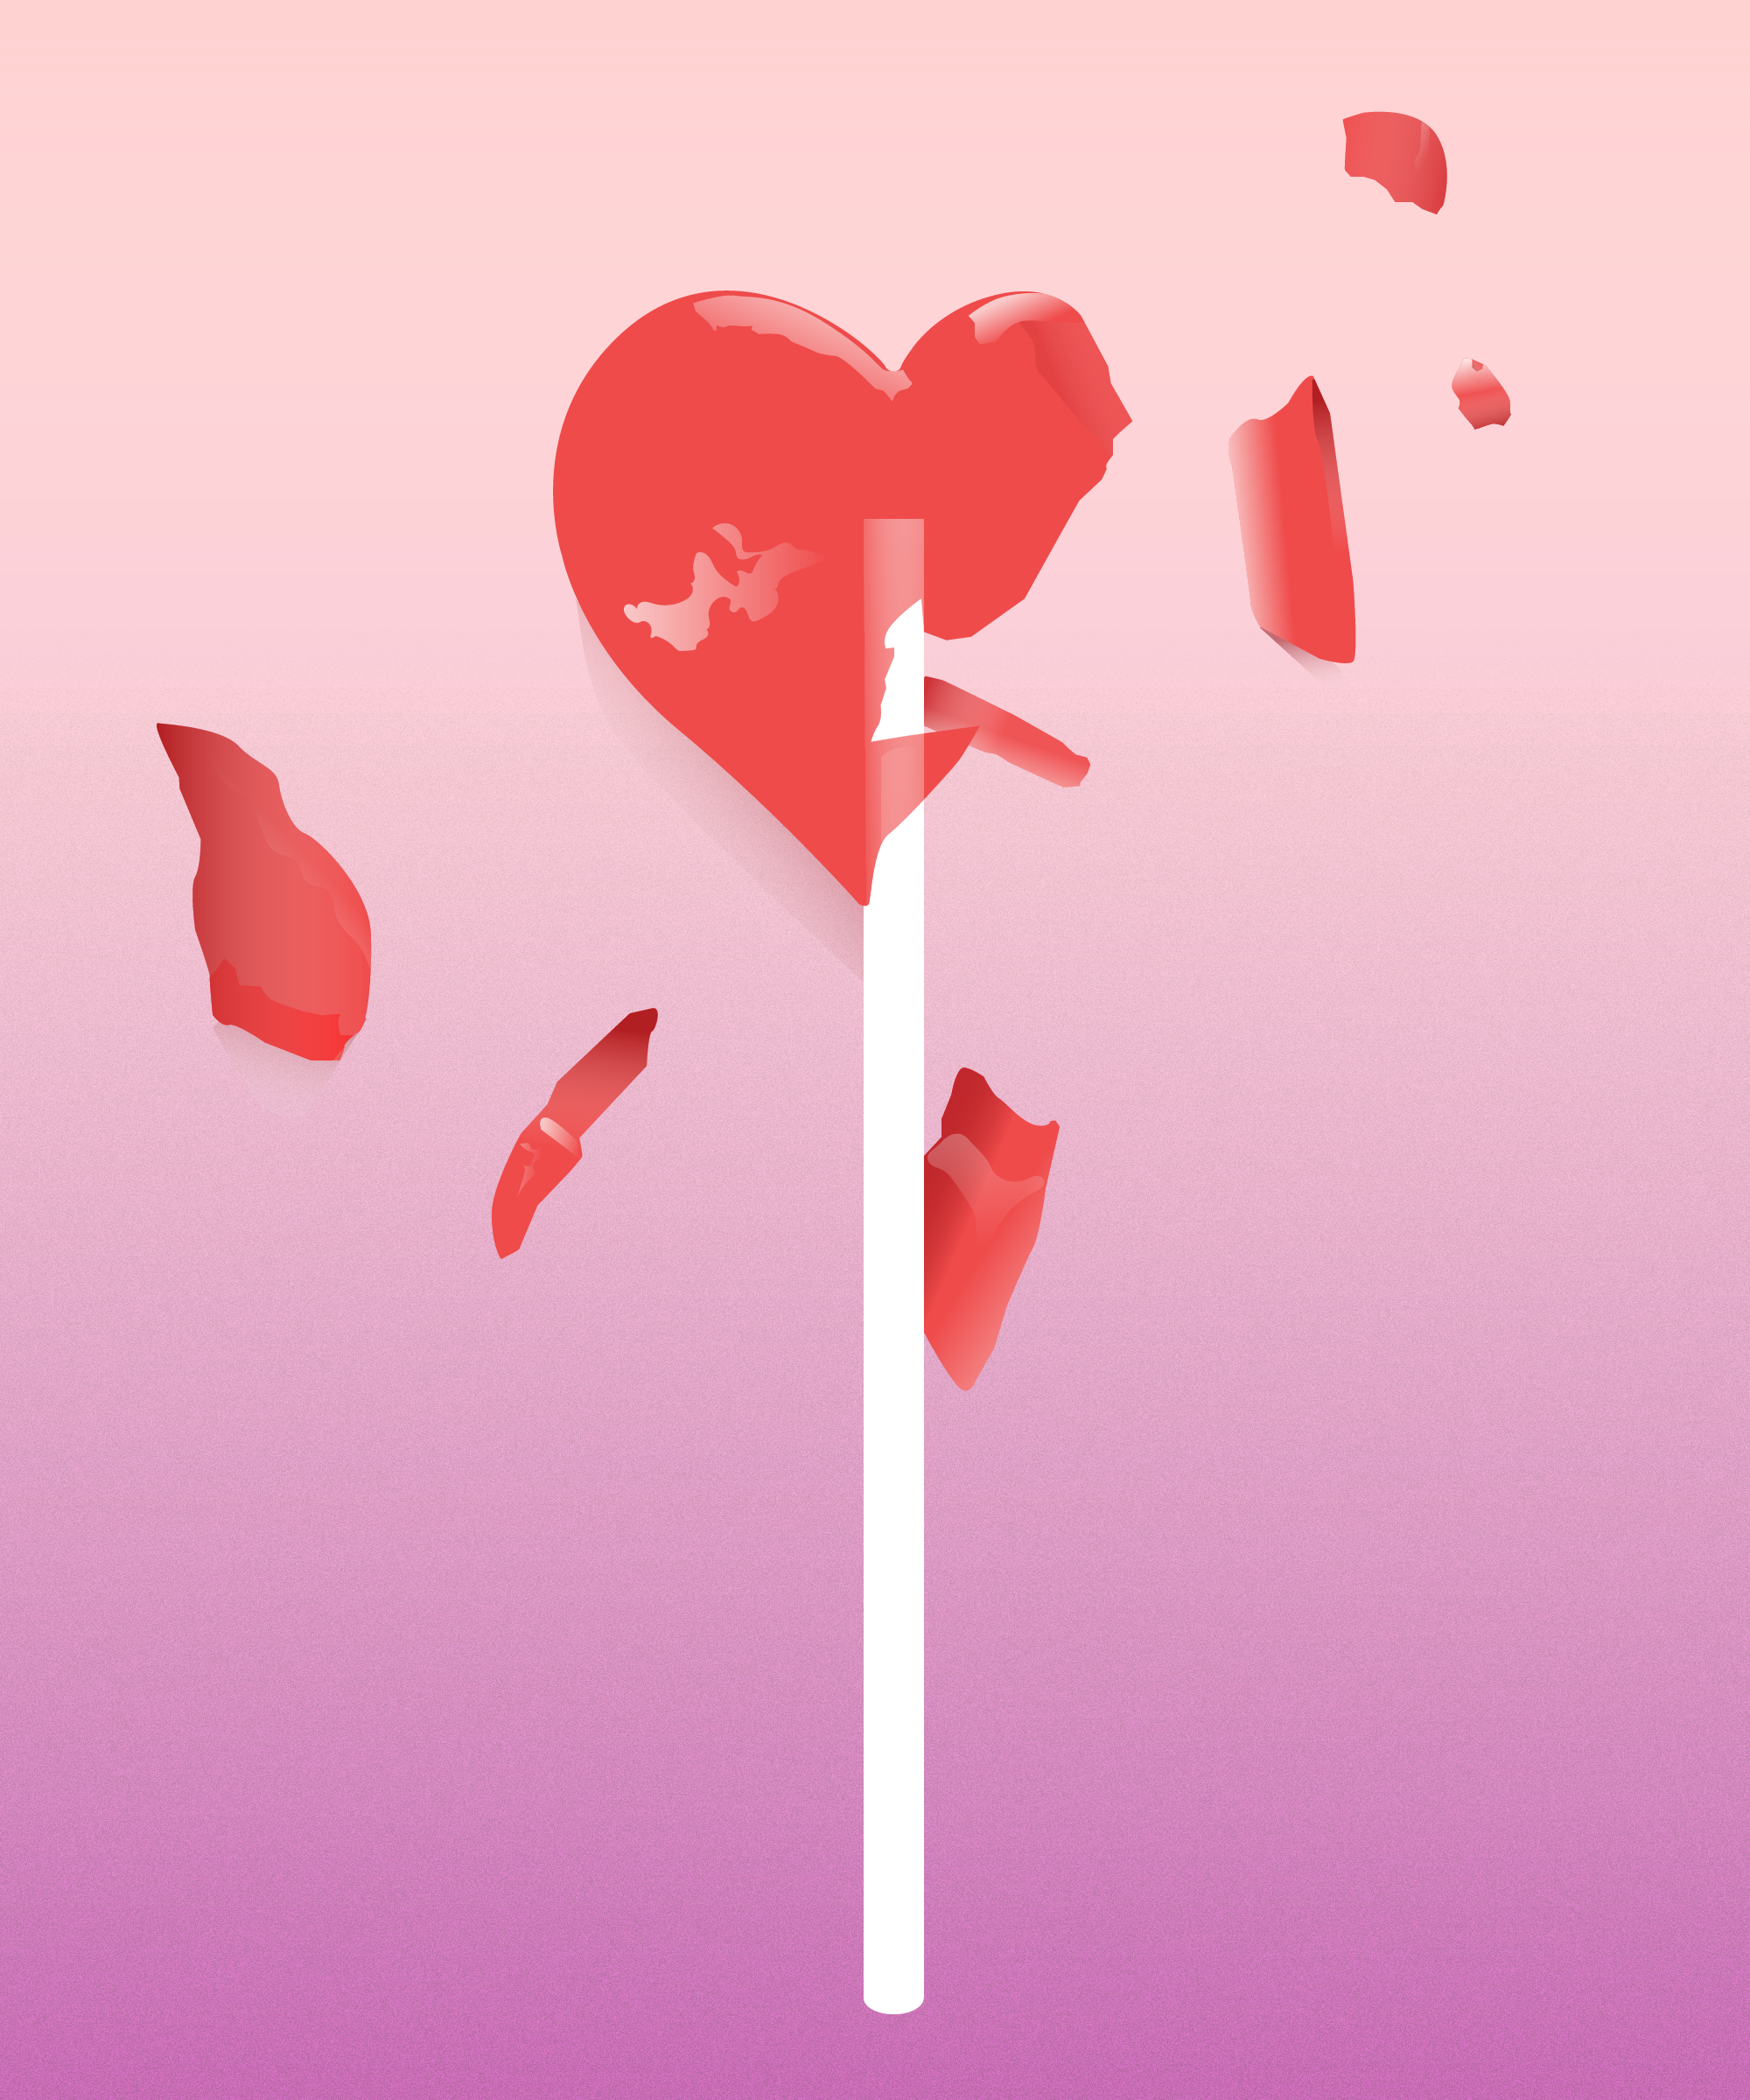 shattered heart-shaped lollipop